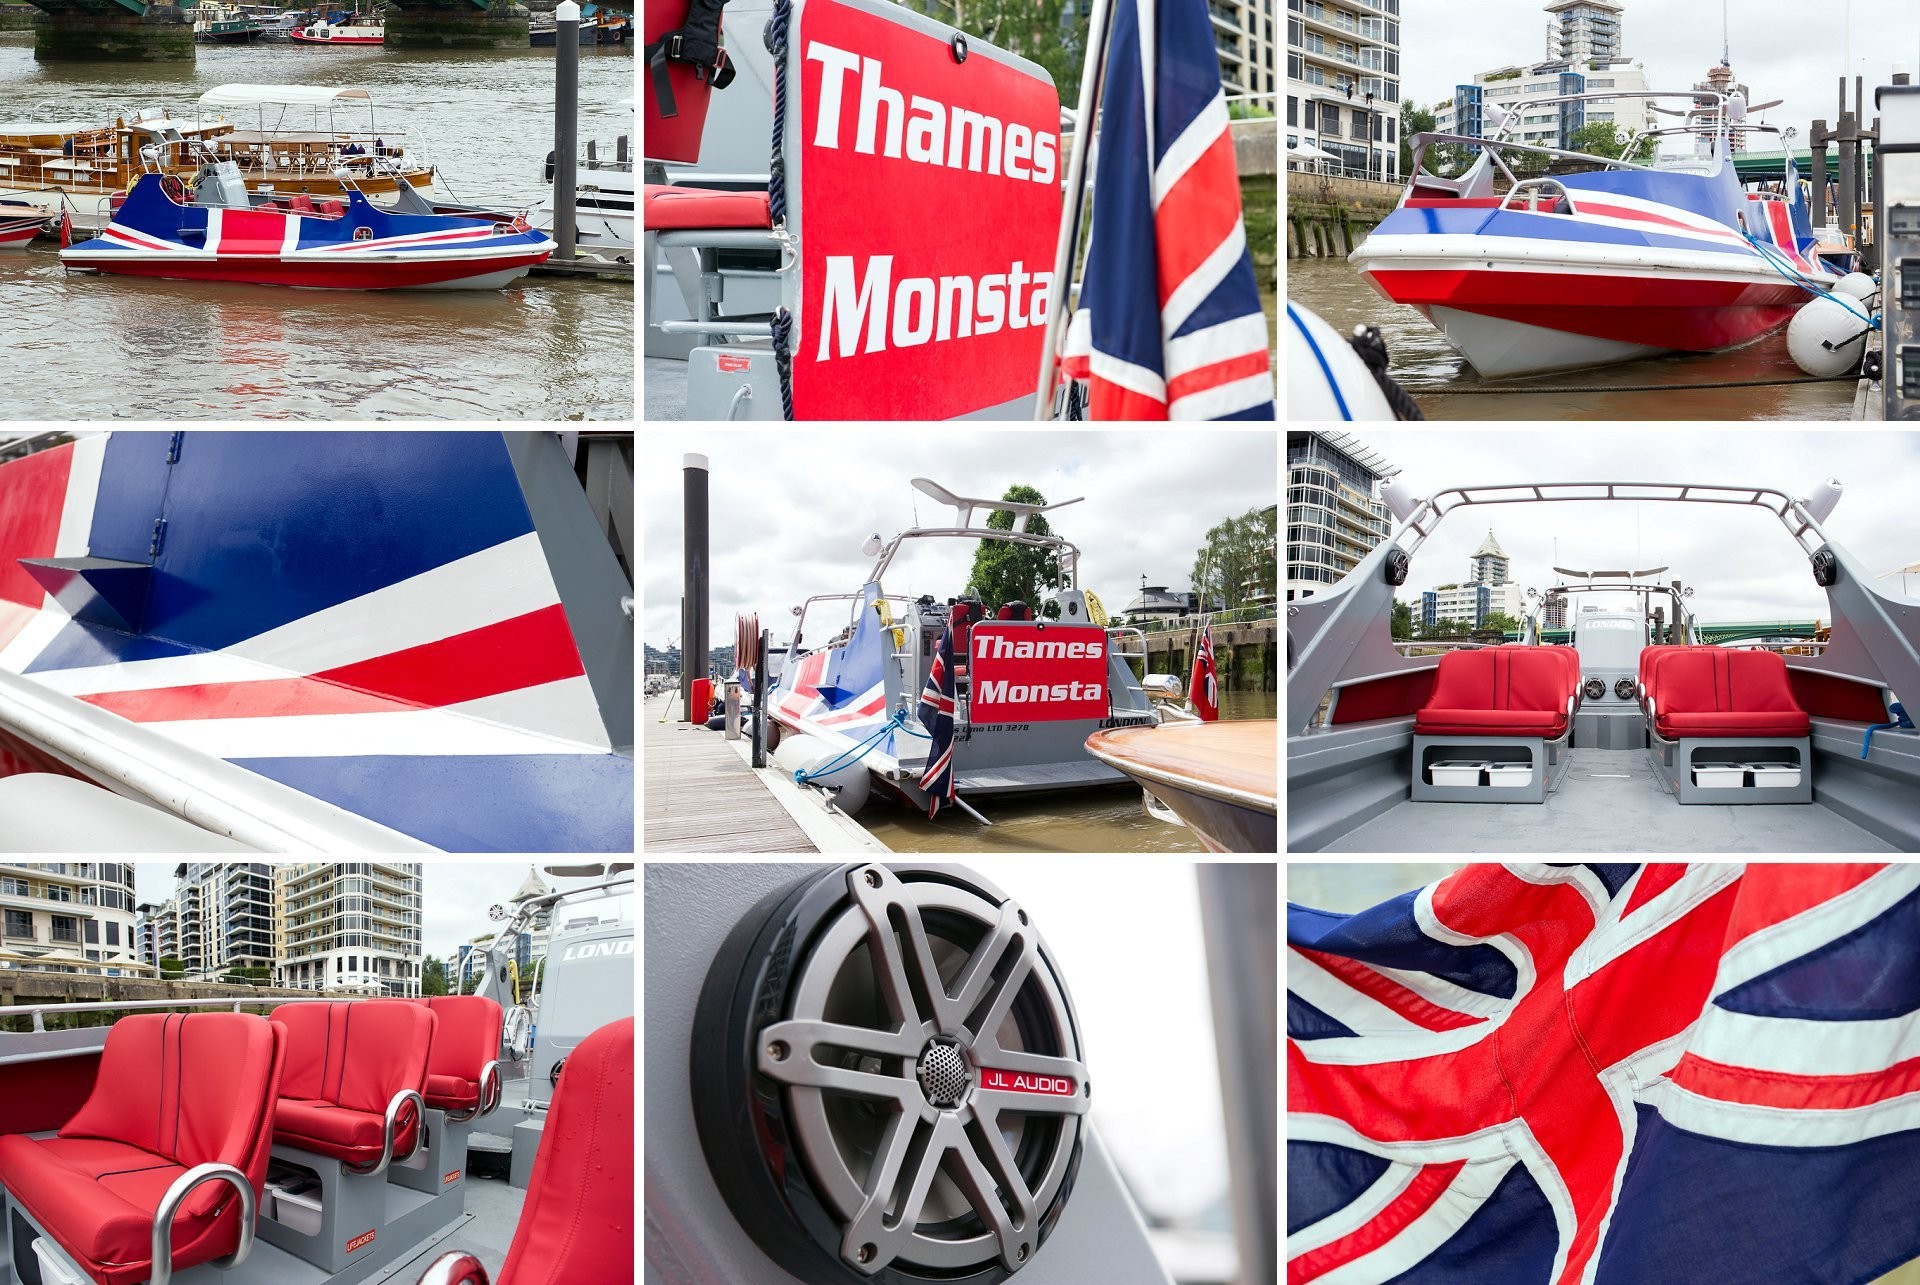 thames-monsta-london-experience-river-thames-tours-seats-12-epic-sound-system-tickets-per-seat-imperial-wharf-marina-emma-duggan-photographer